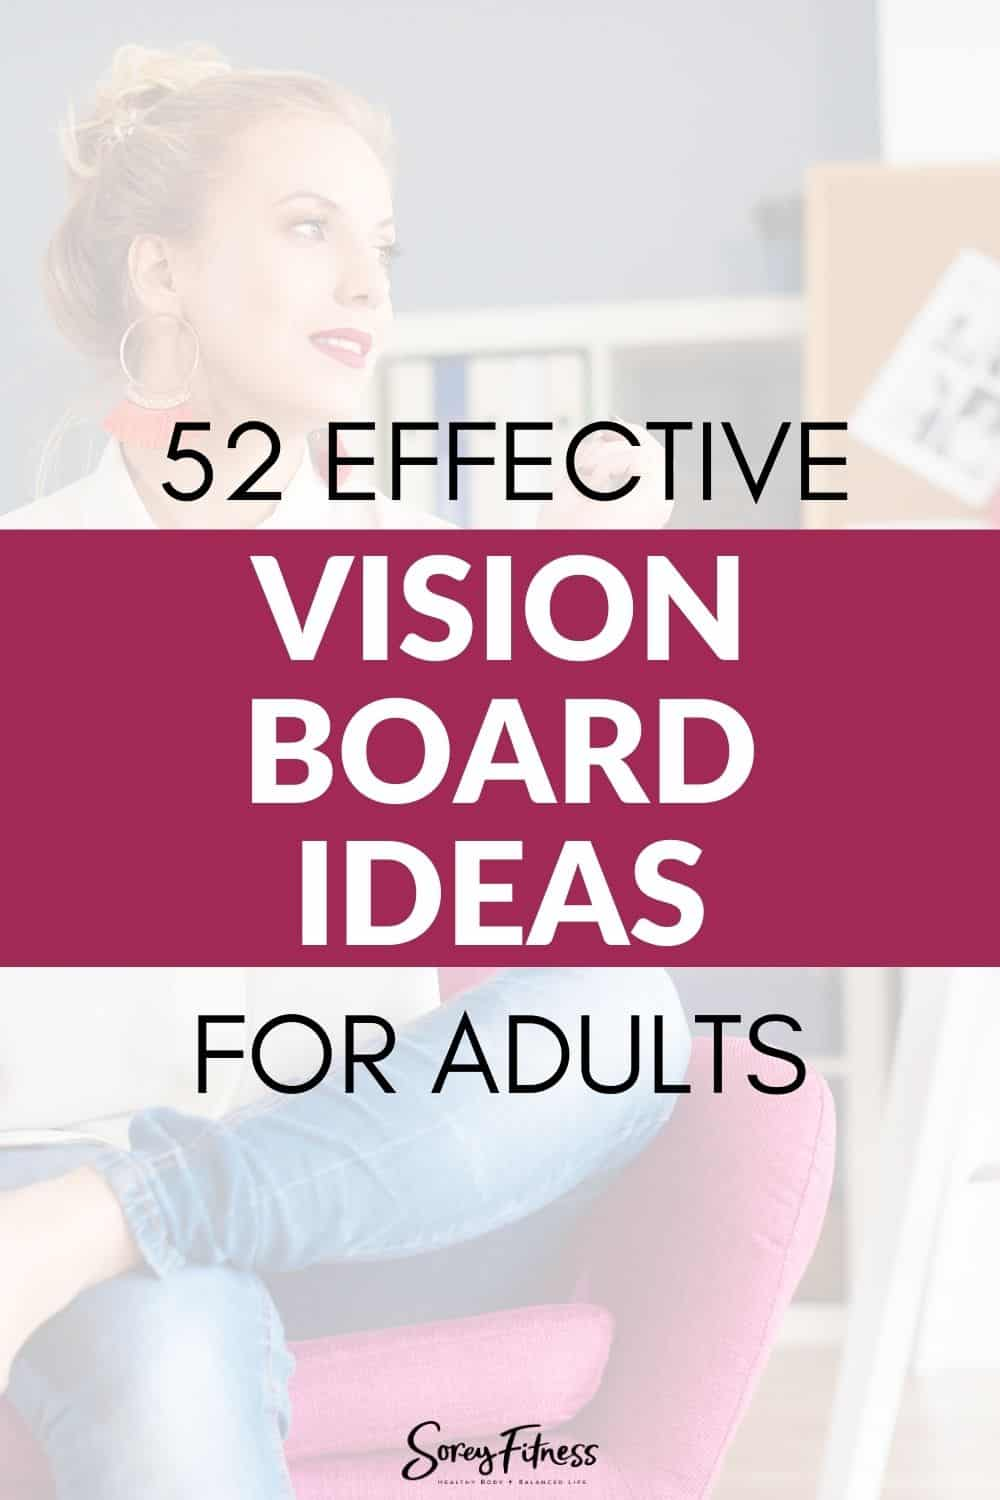 52 effective vision board ideas for adults pinterest pin